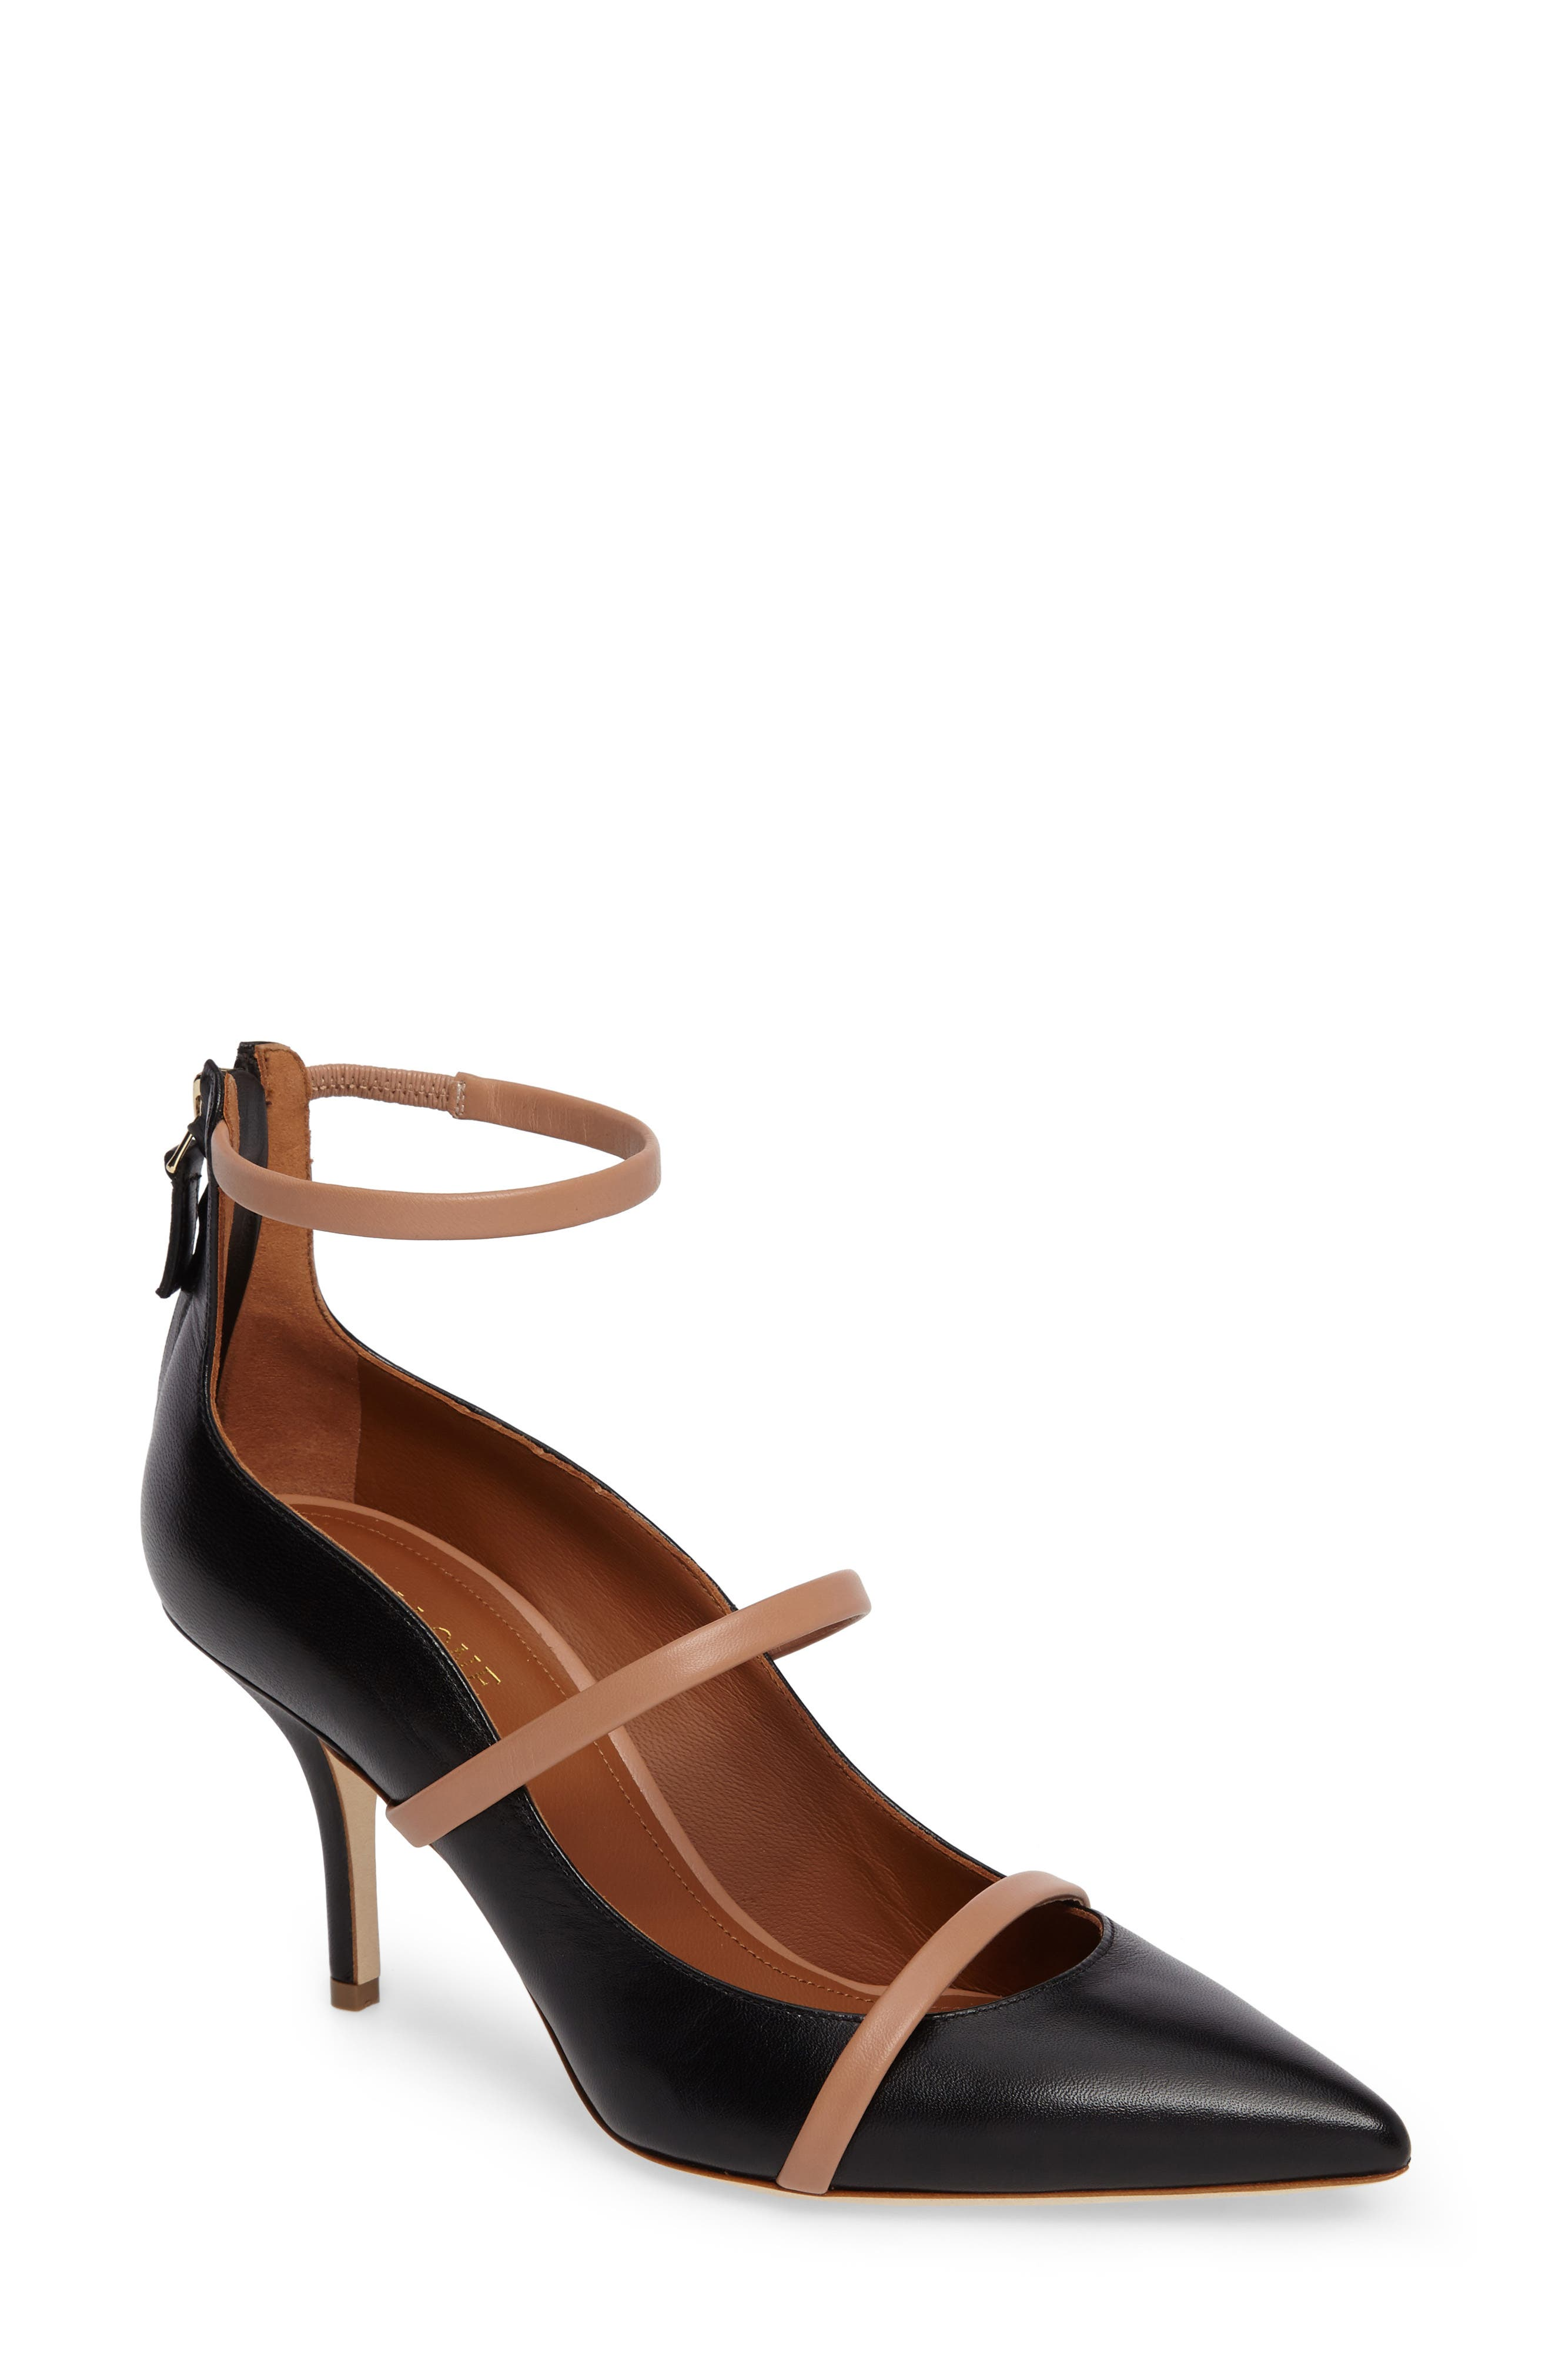 Robyn Ankle Strap Pump,                         Main,                         color, BLACK/ NUDE